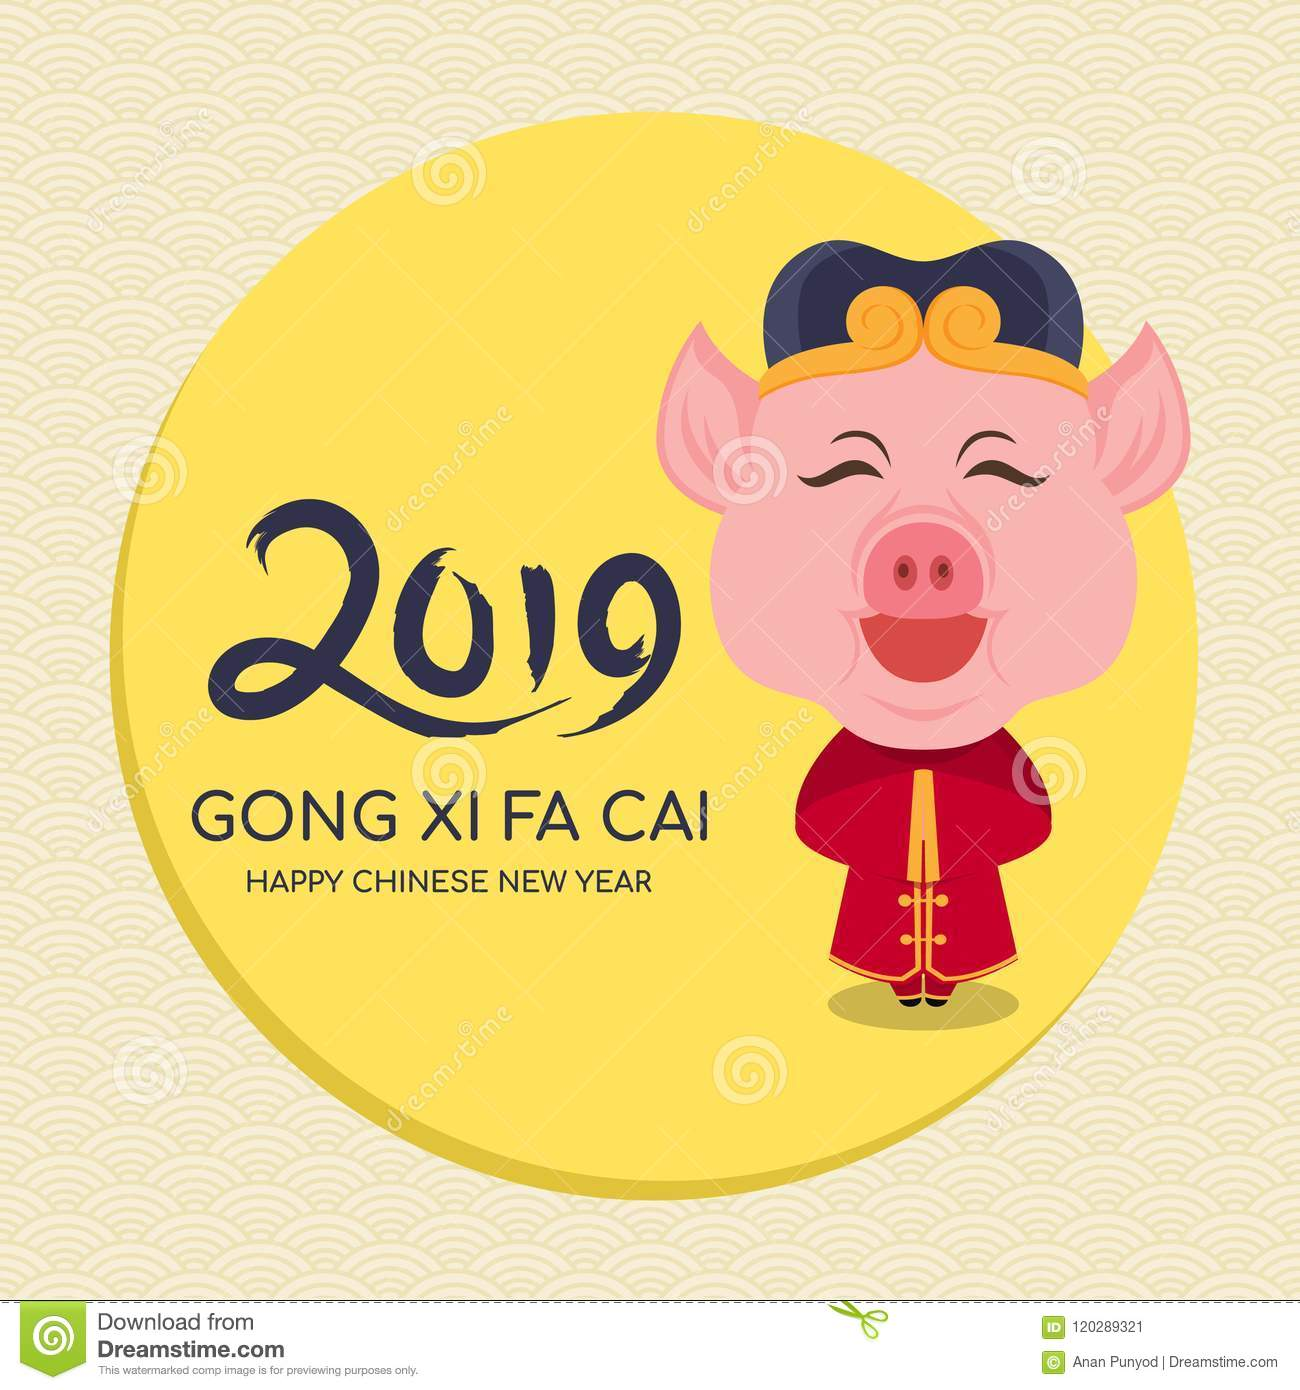 happy chinese new year 2019 year of the pig with cute cartoon chinese pig charactor in